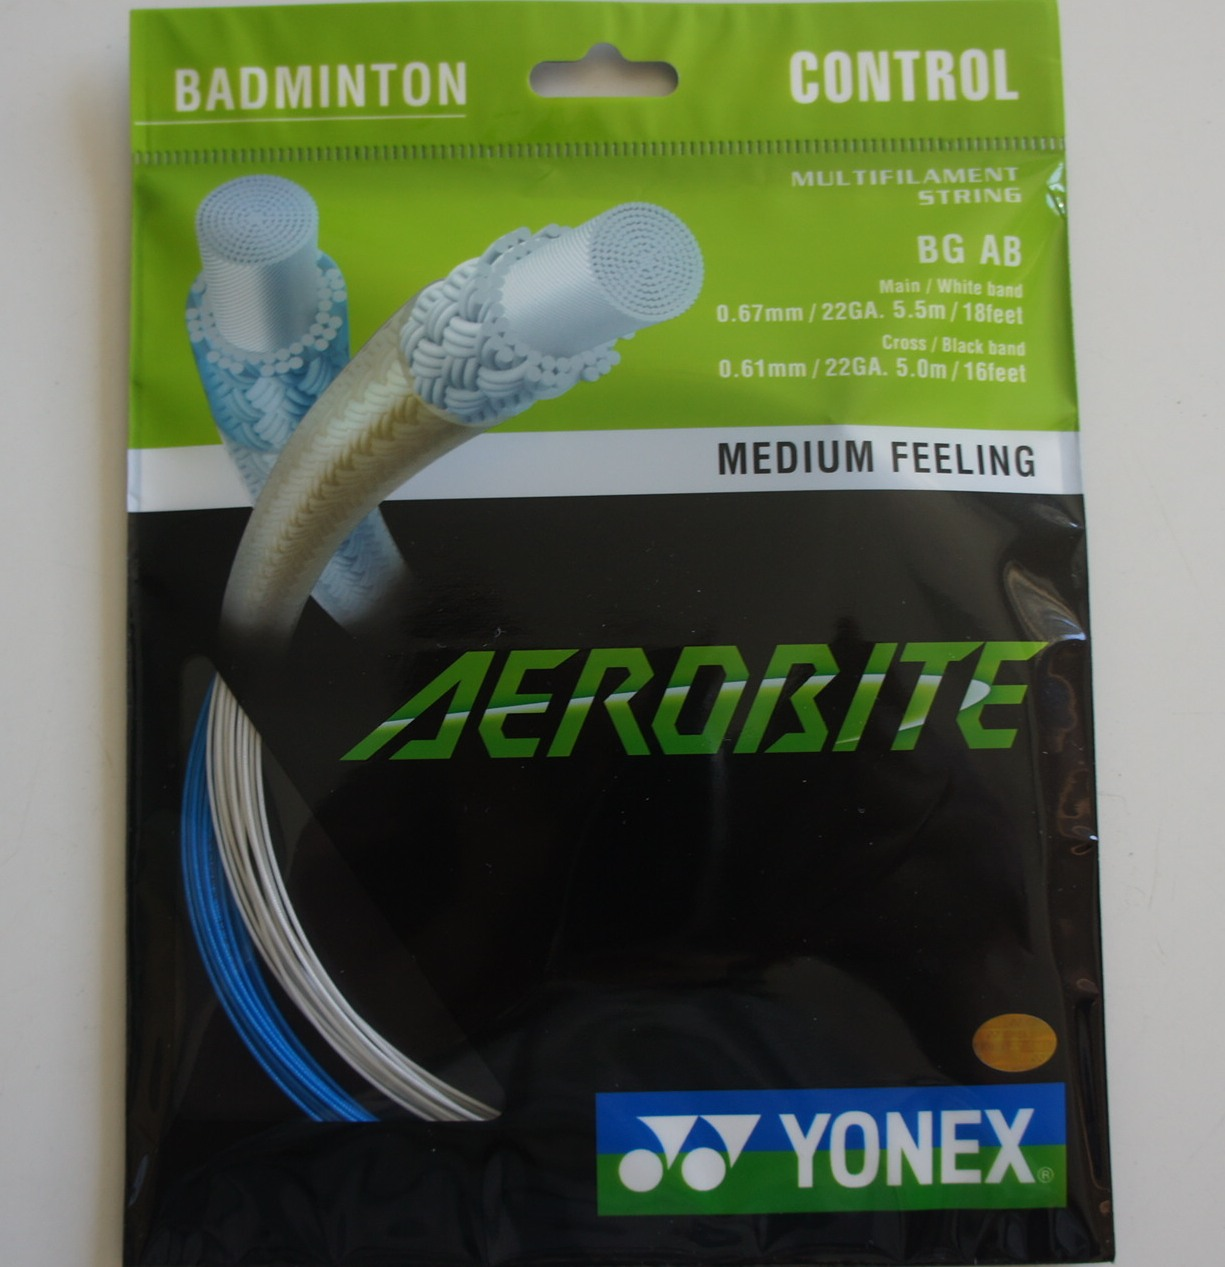 YONEX BG AB Aerobite Badminton String (2 Packs), Blue/White